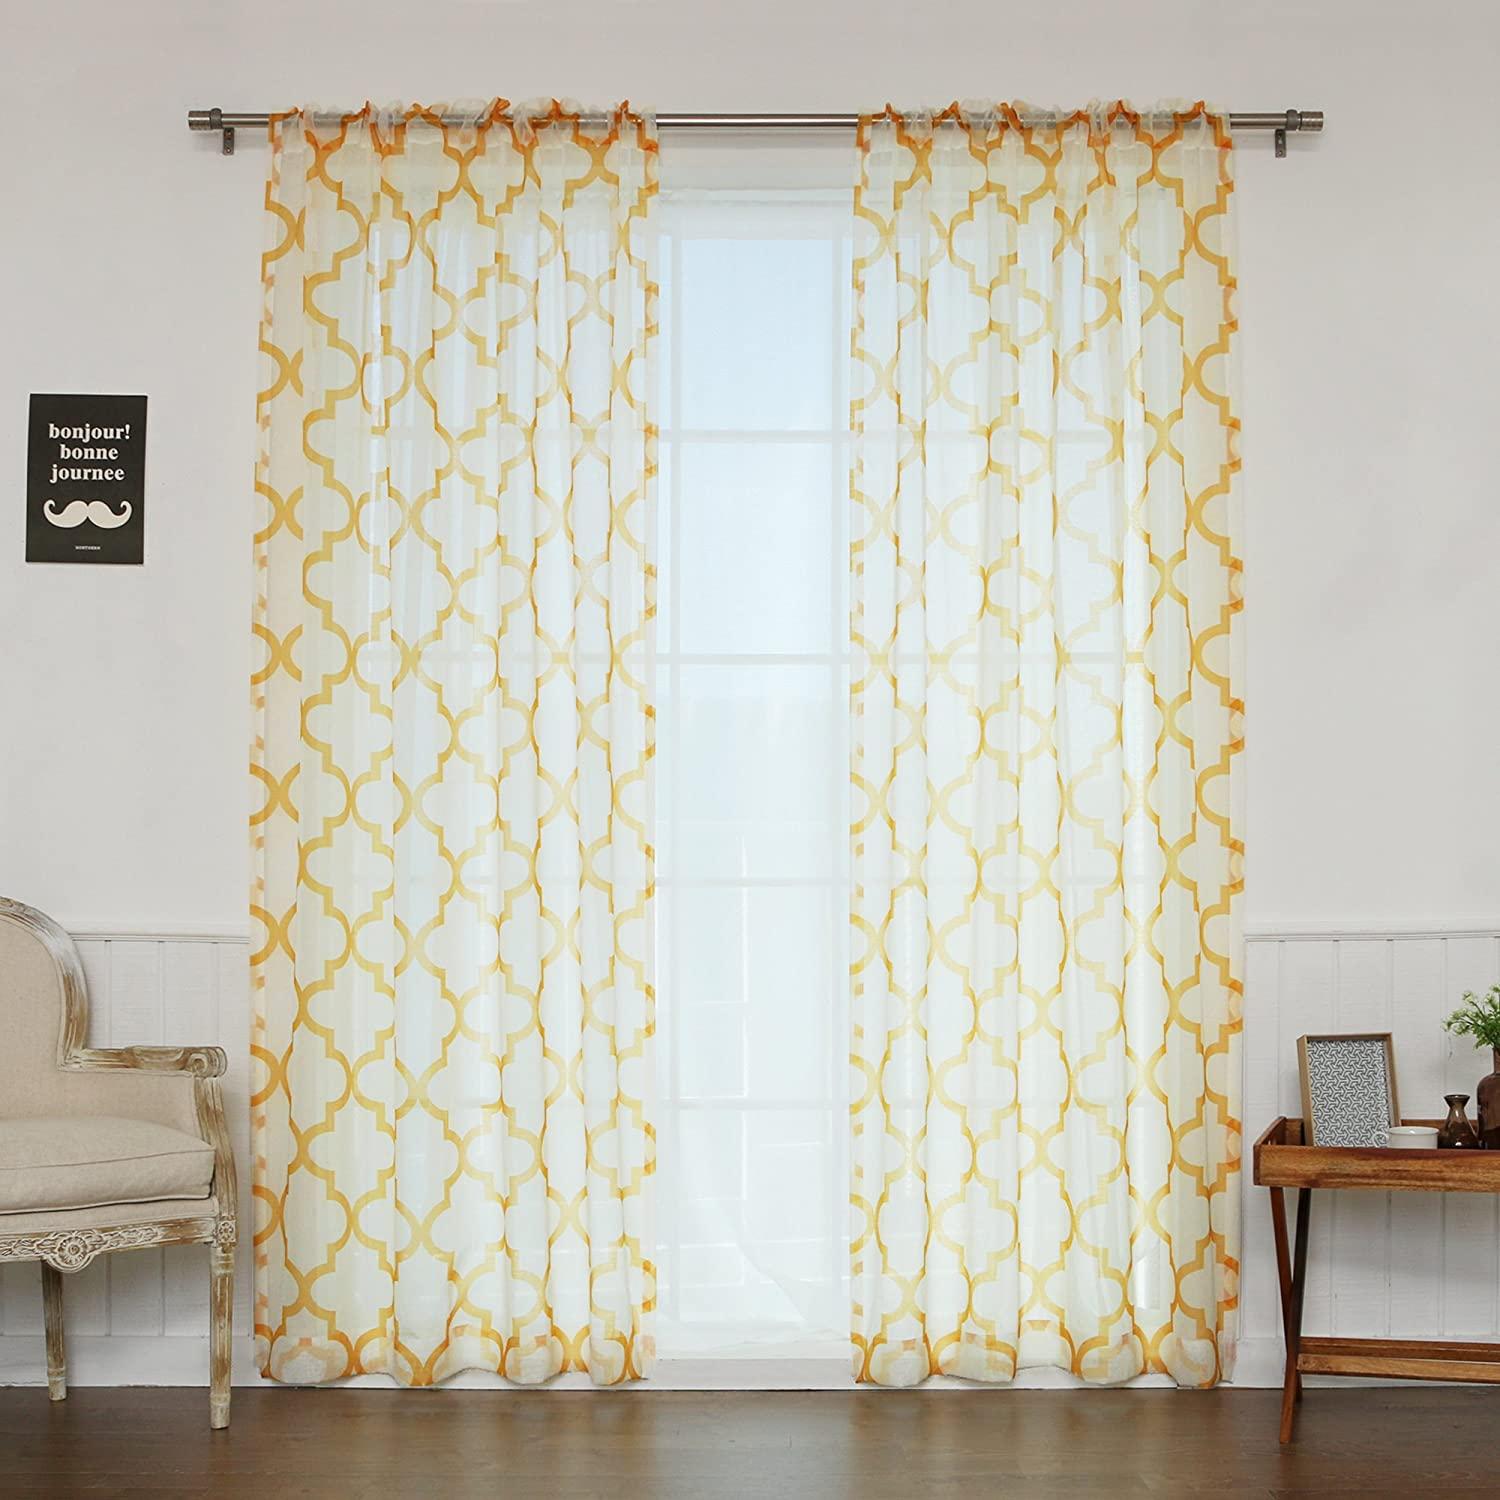 Best Home Fashion Faux Sheer Gauzy Linen Reverse Moroccan Print Curtains Rod Pocket Yellow